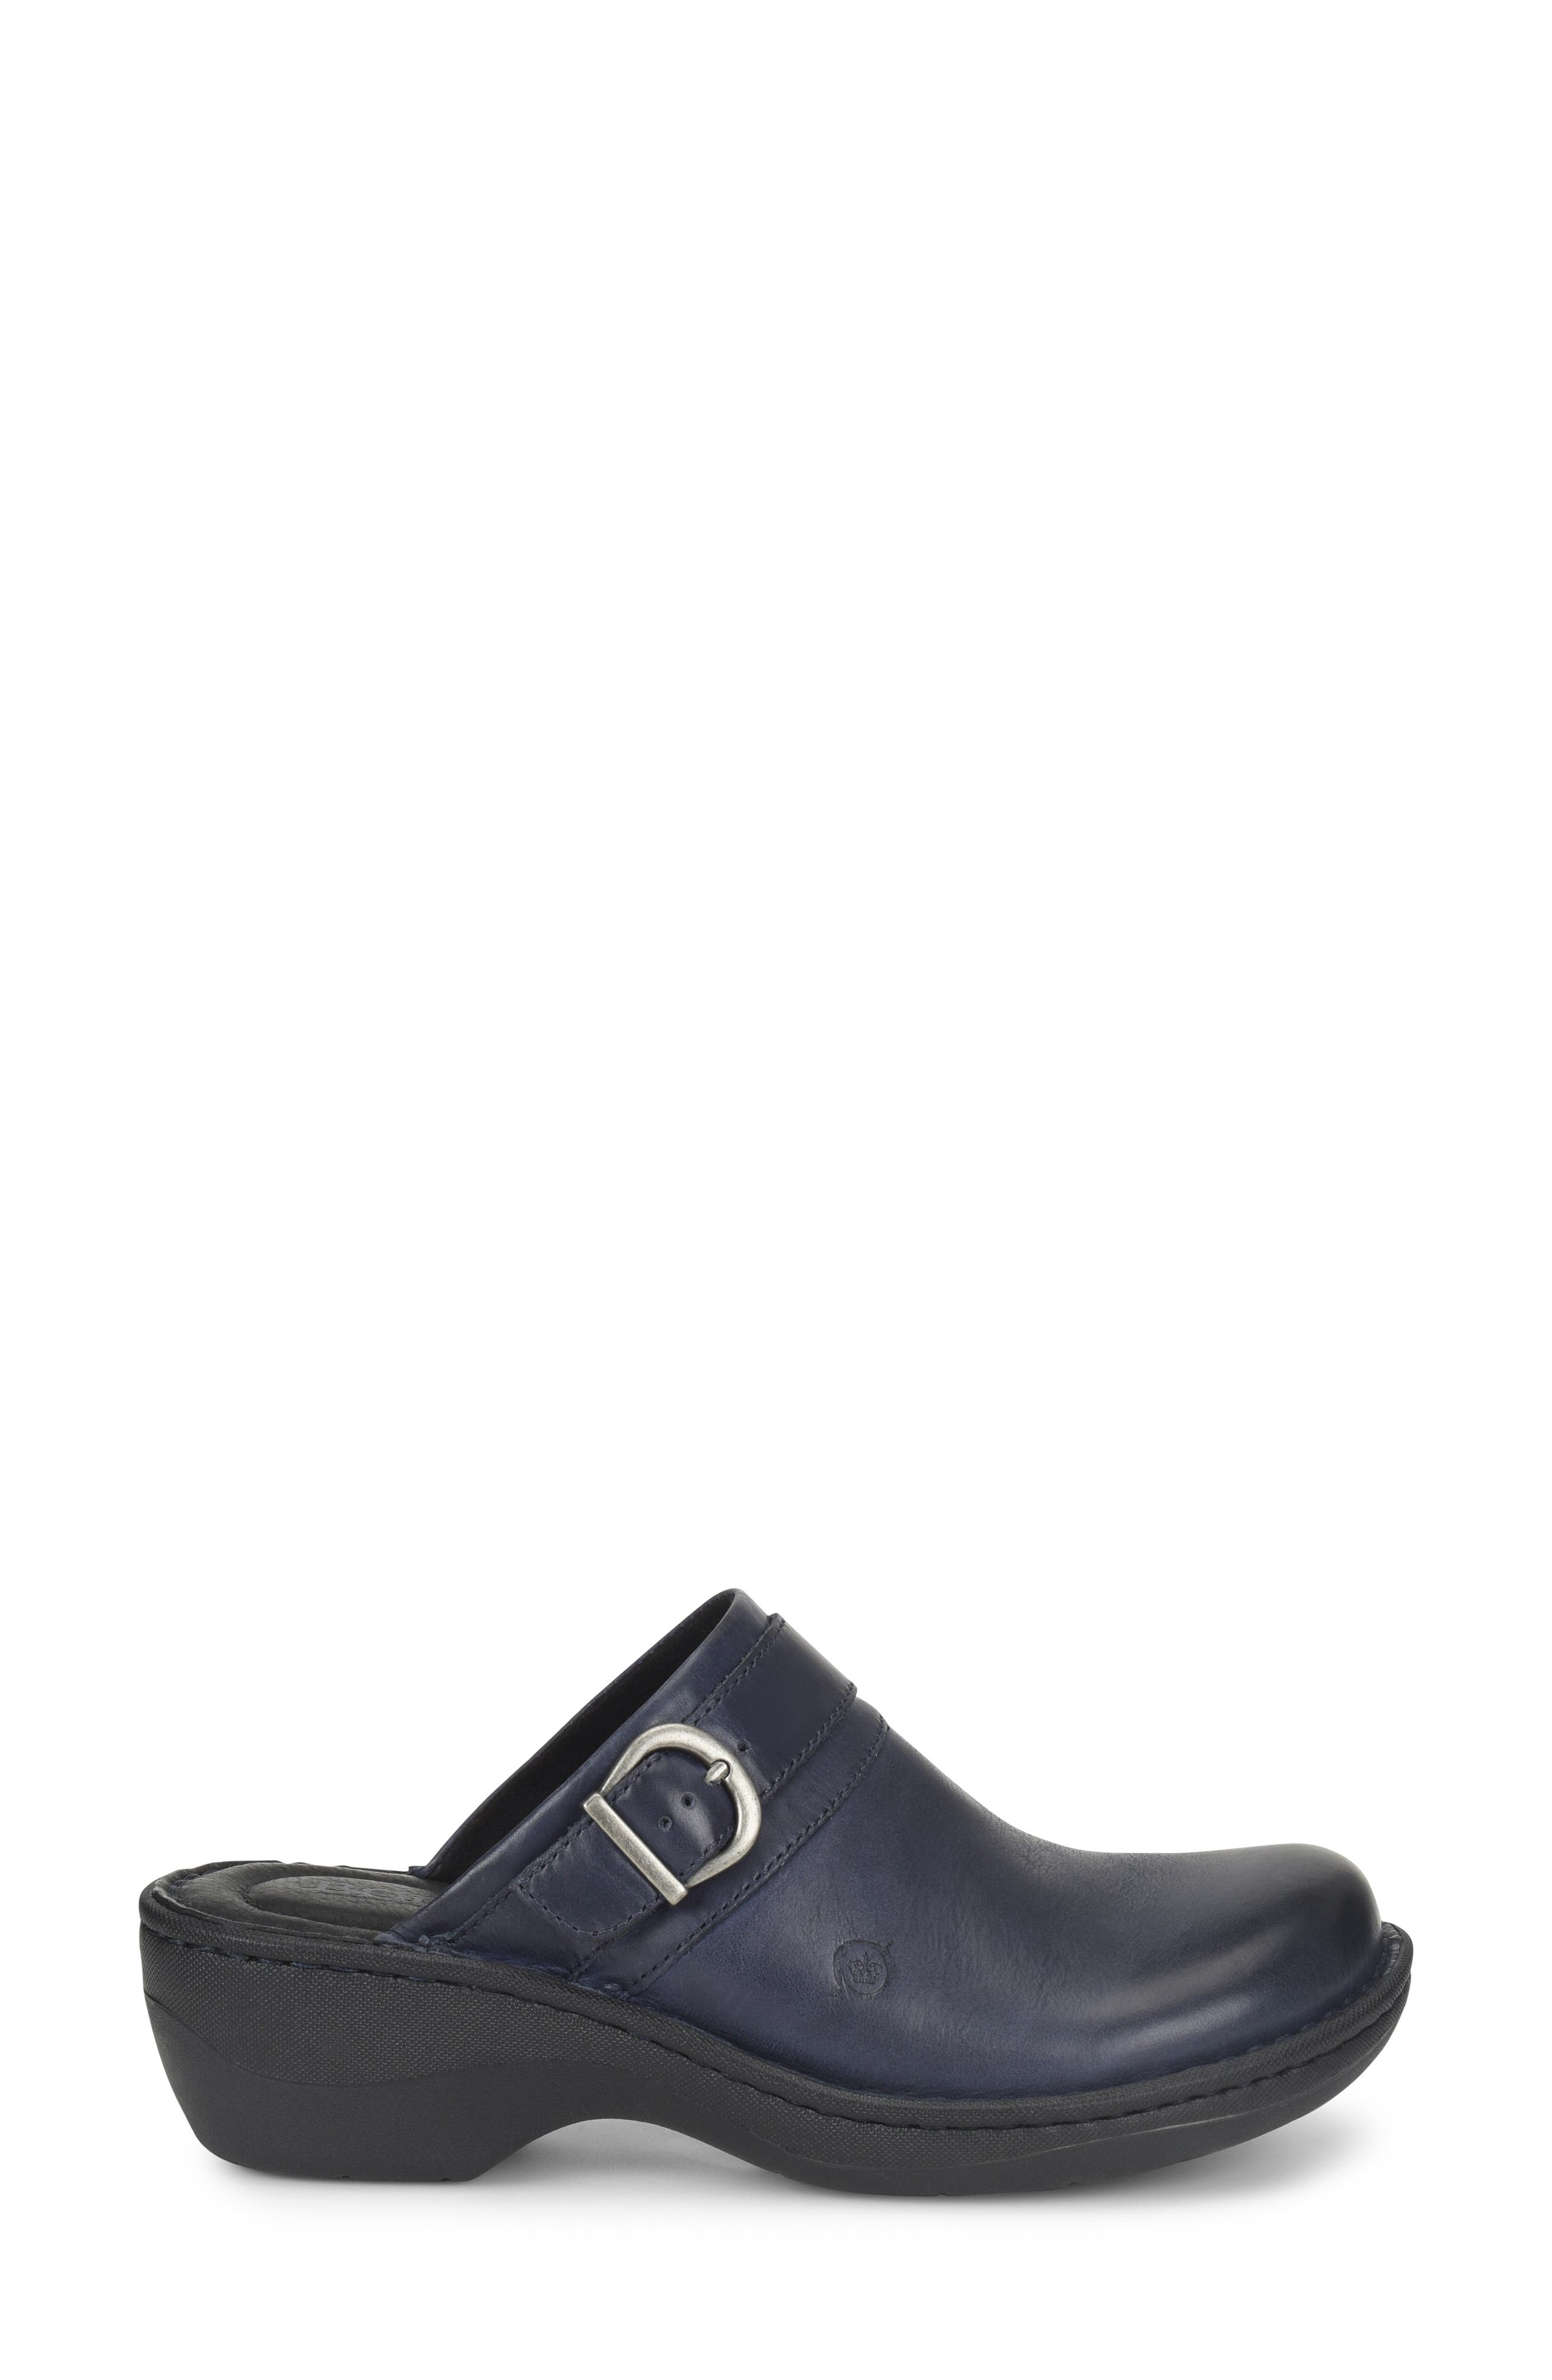 Avoca Clog,                             Alternate thumbnail 3, color,                             NAVY LEATHER